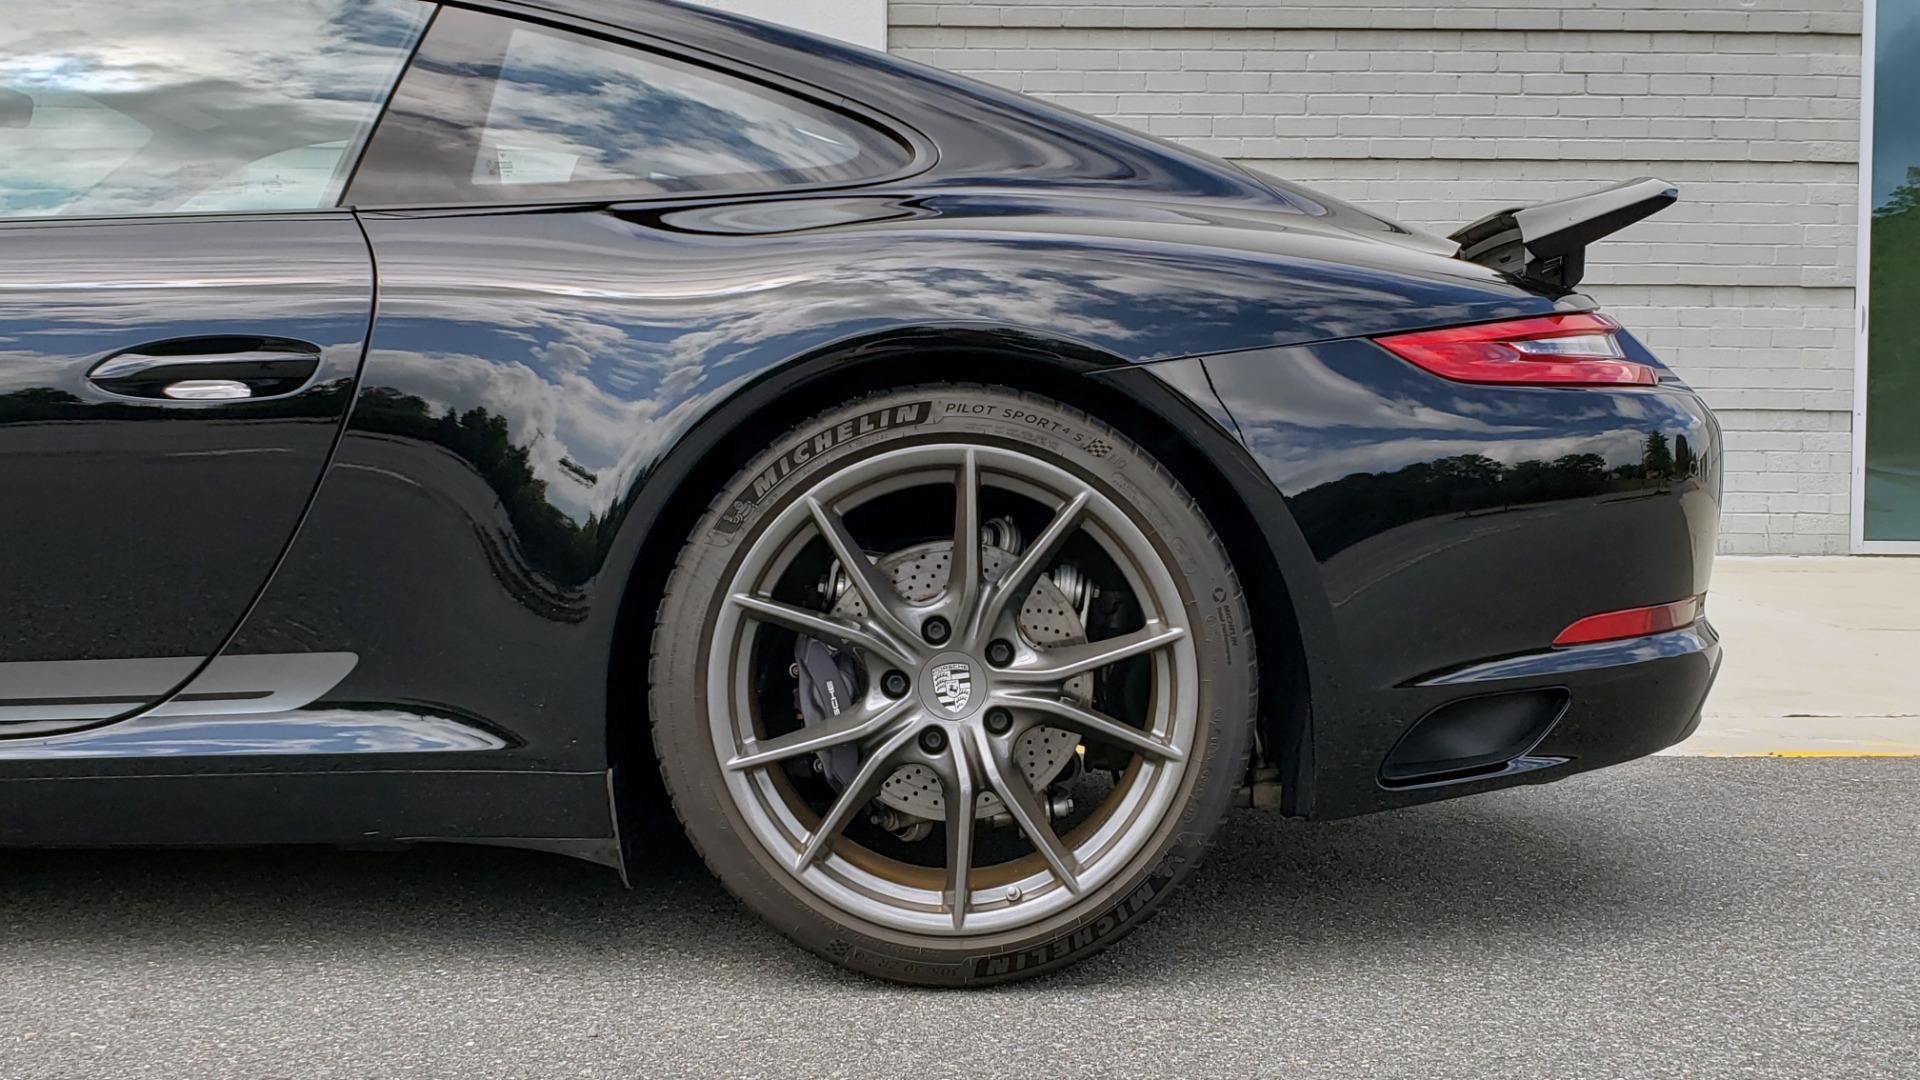 Used 2019 Porsche 911 CARRERA T / 3.0L H6 / MANUAL / PREMIUM / NAV / BOSE / SUNROOF / REARVIEW for sale $117,000 at Formula Imports in Charlotte NC 28227 81